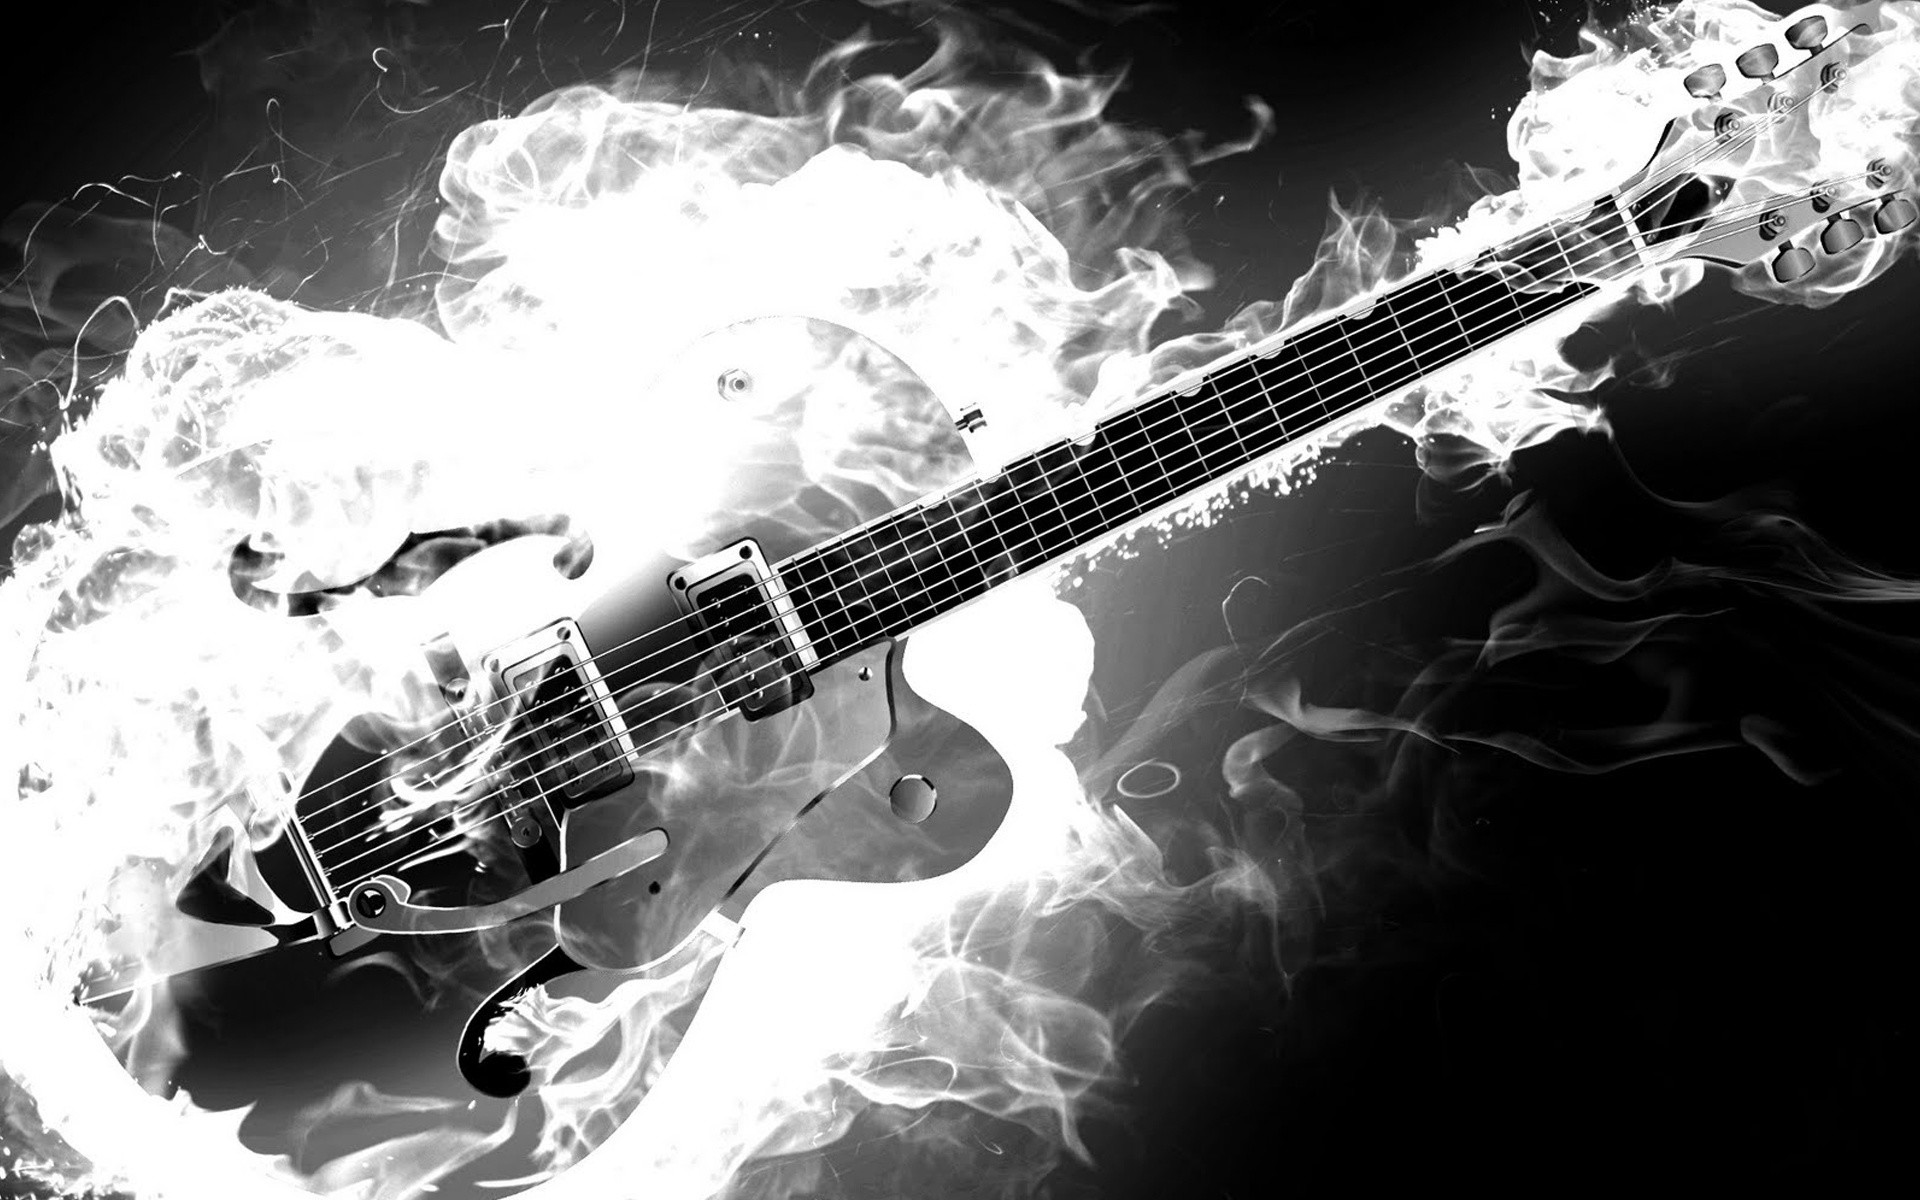 Cool Guitar Backgrounds | HD Wallpapers | Pinterest | Hd wallpaper, Guitars  and Wallpaper